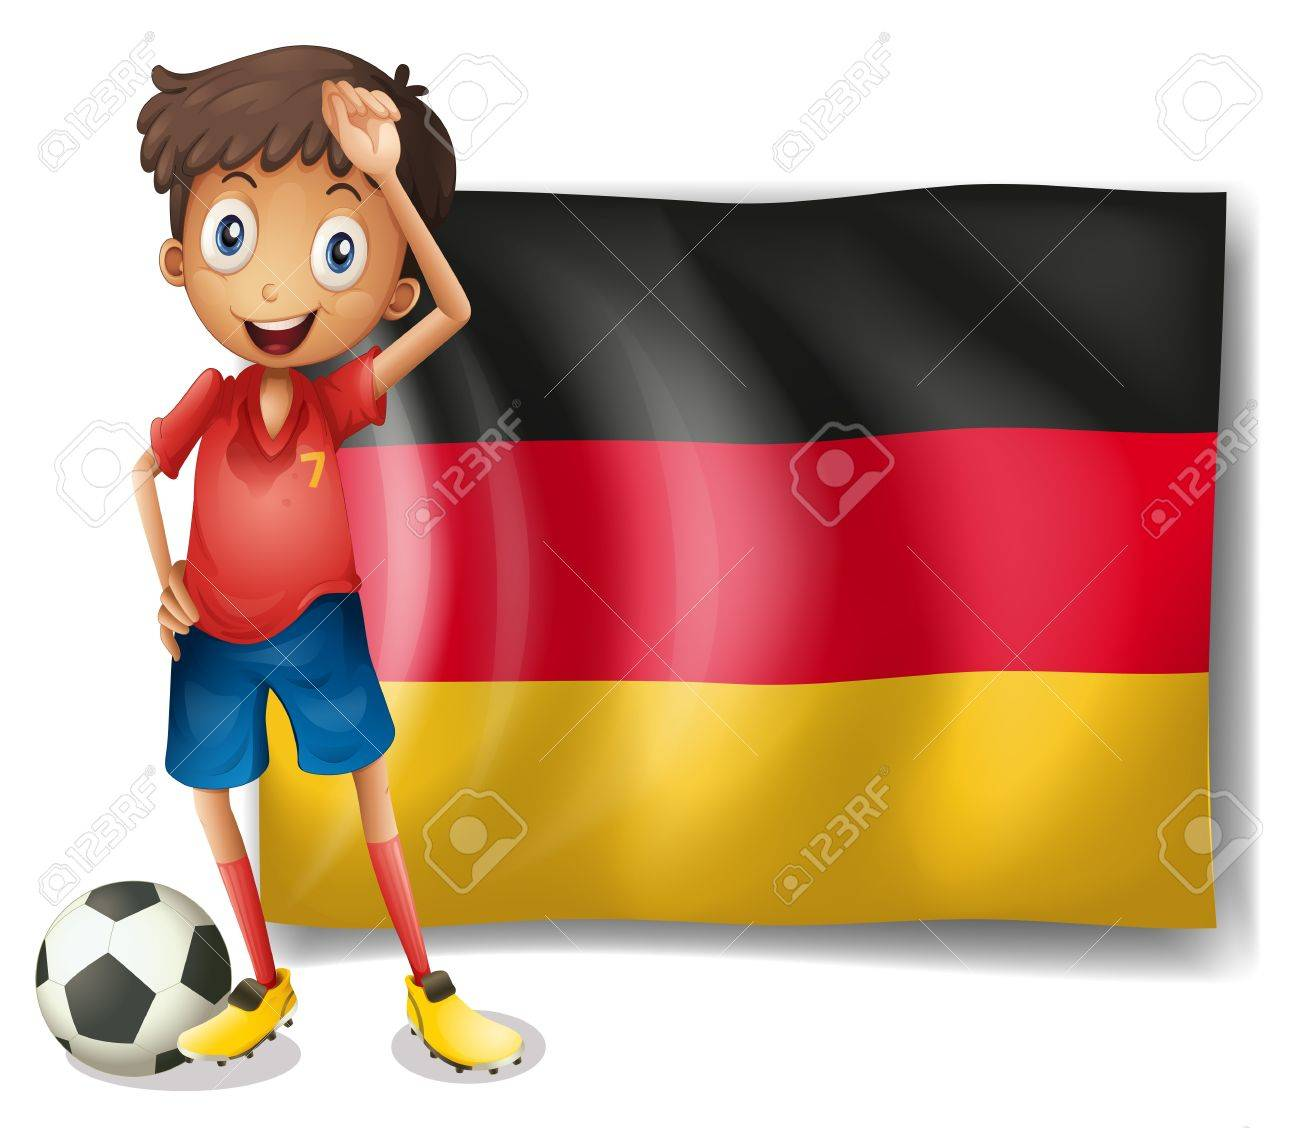 Illustration of a football player in front of the flag of Germany on a white background Stock Vector - 18459204